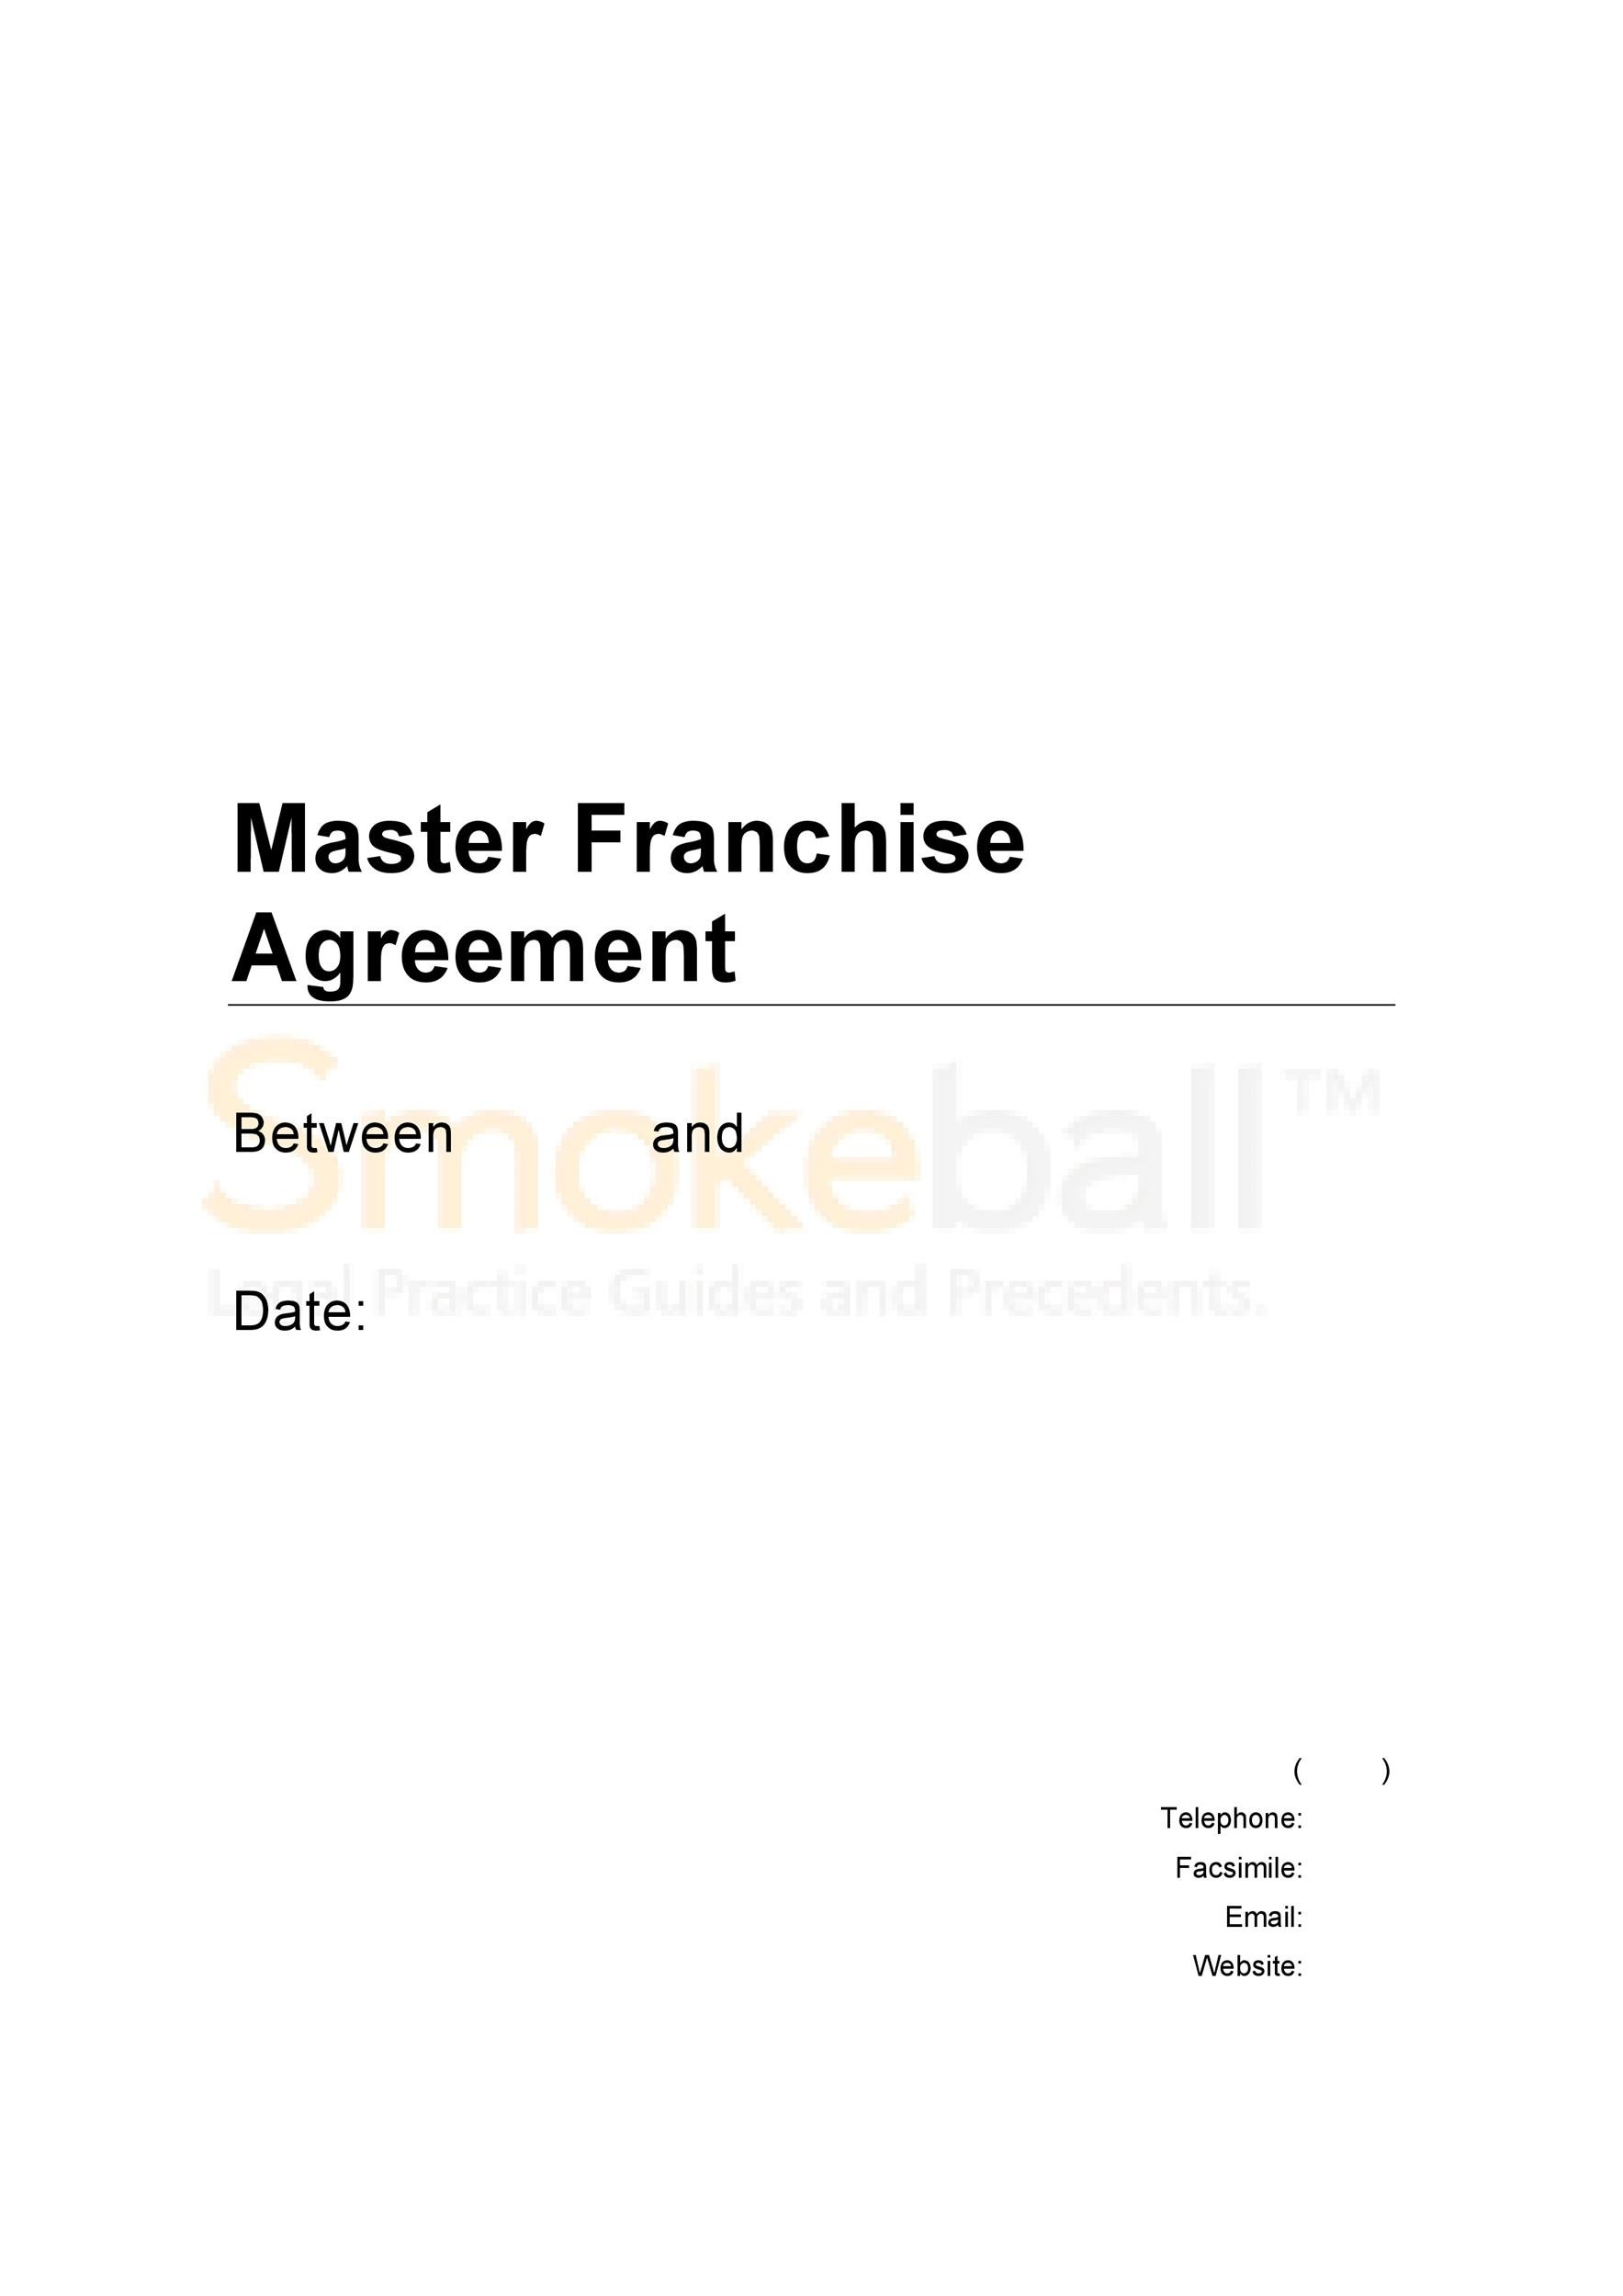 Free franchise agreement 40